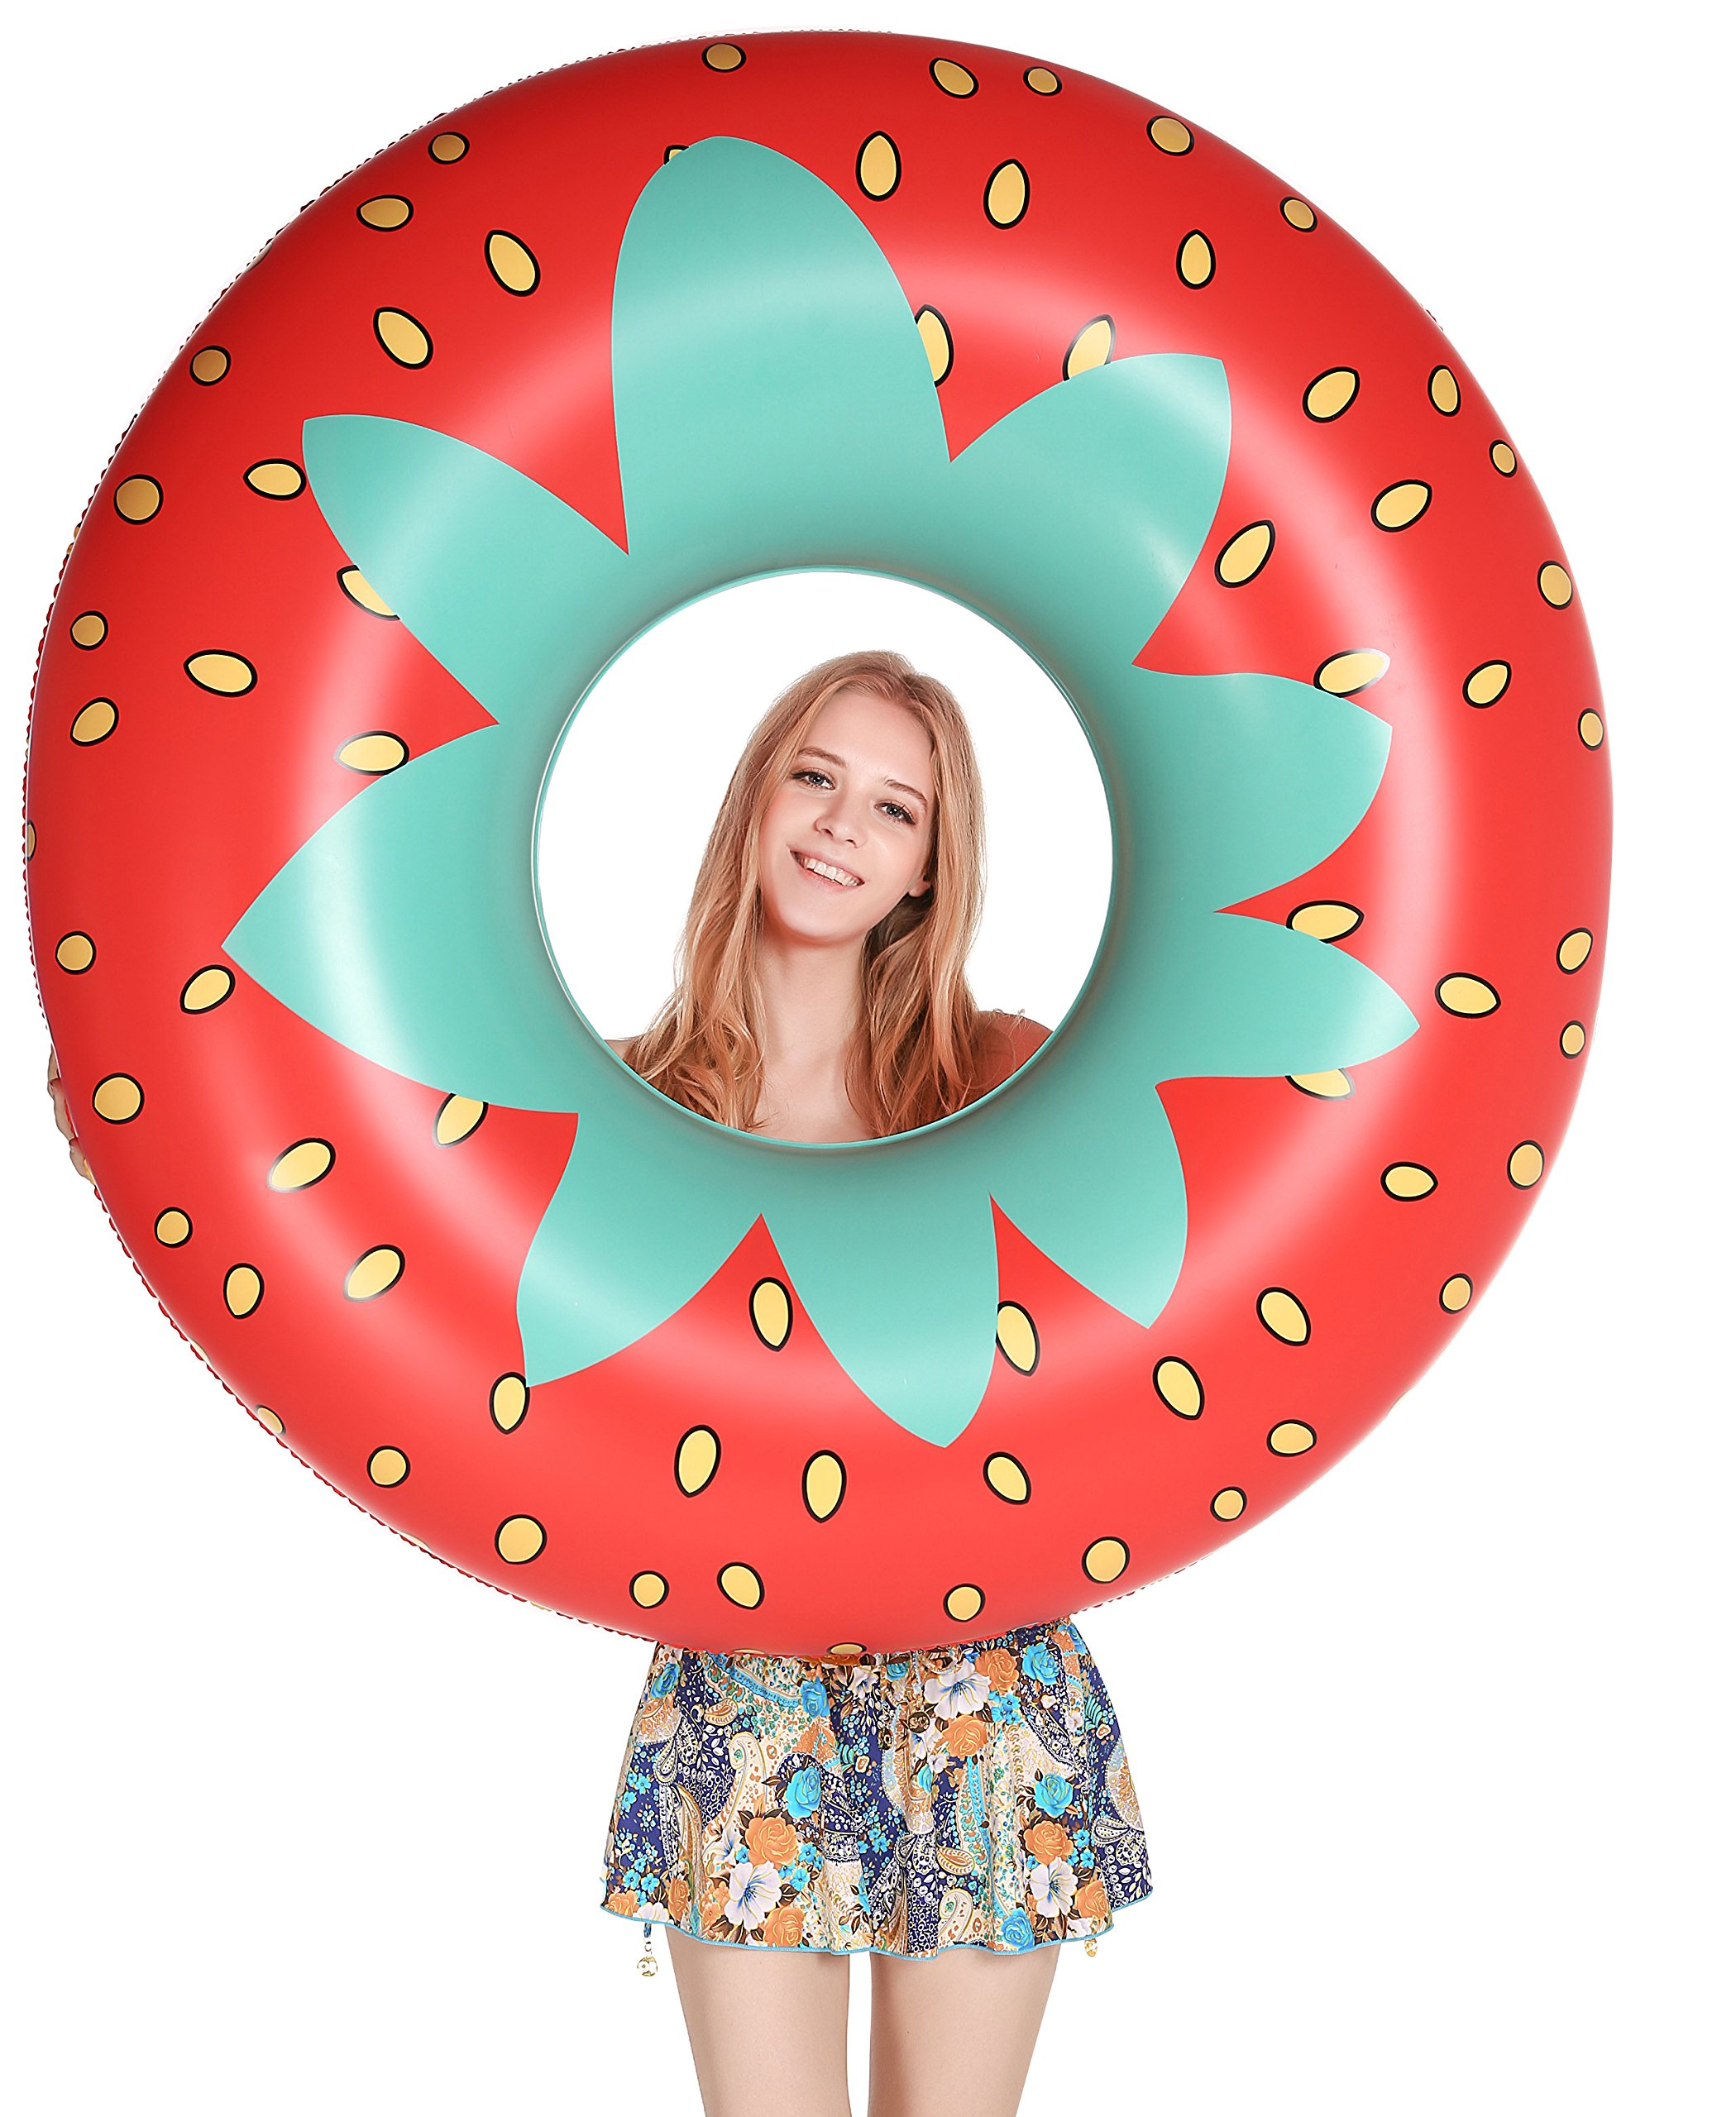 Jasonwell Giant Strawberry Pool Party Float 45 Inch Inflatable Pool Floats Tube Rafts with Rapid Valves Summer Beach Swimming Pool Lounge Decorations Toys for Adults & Kids